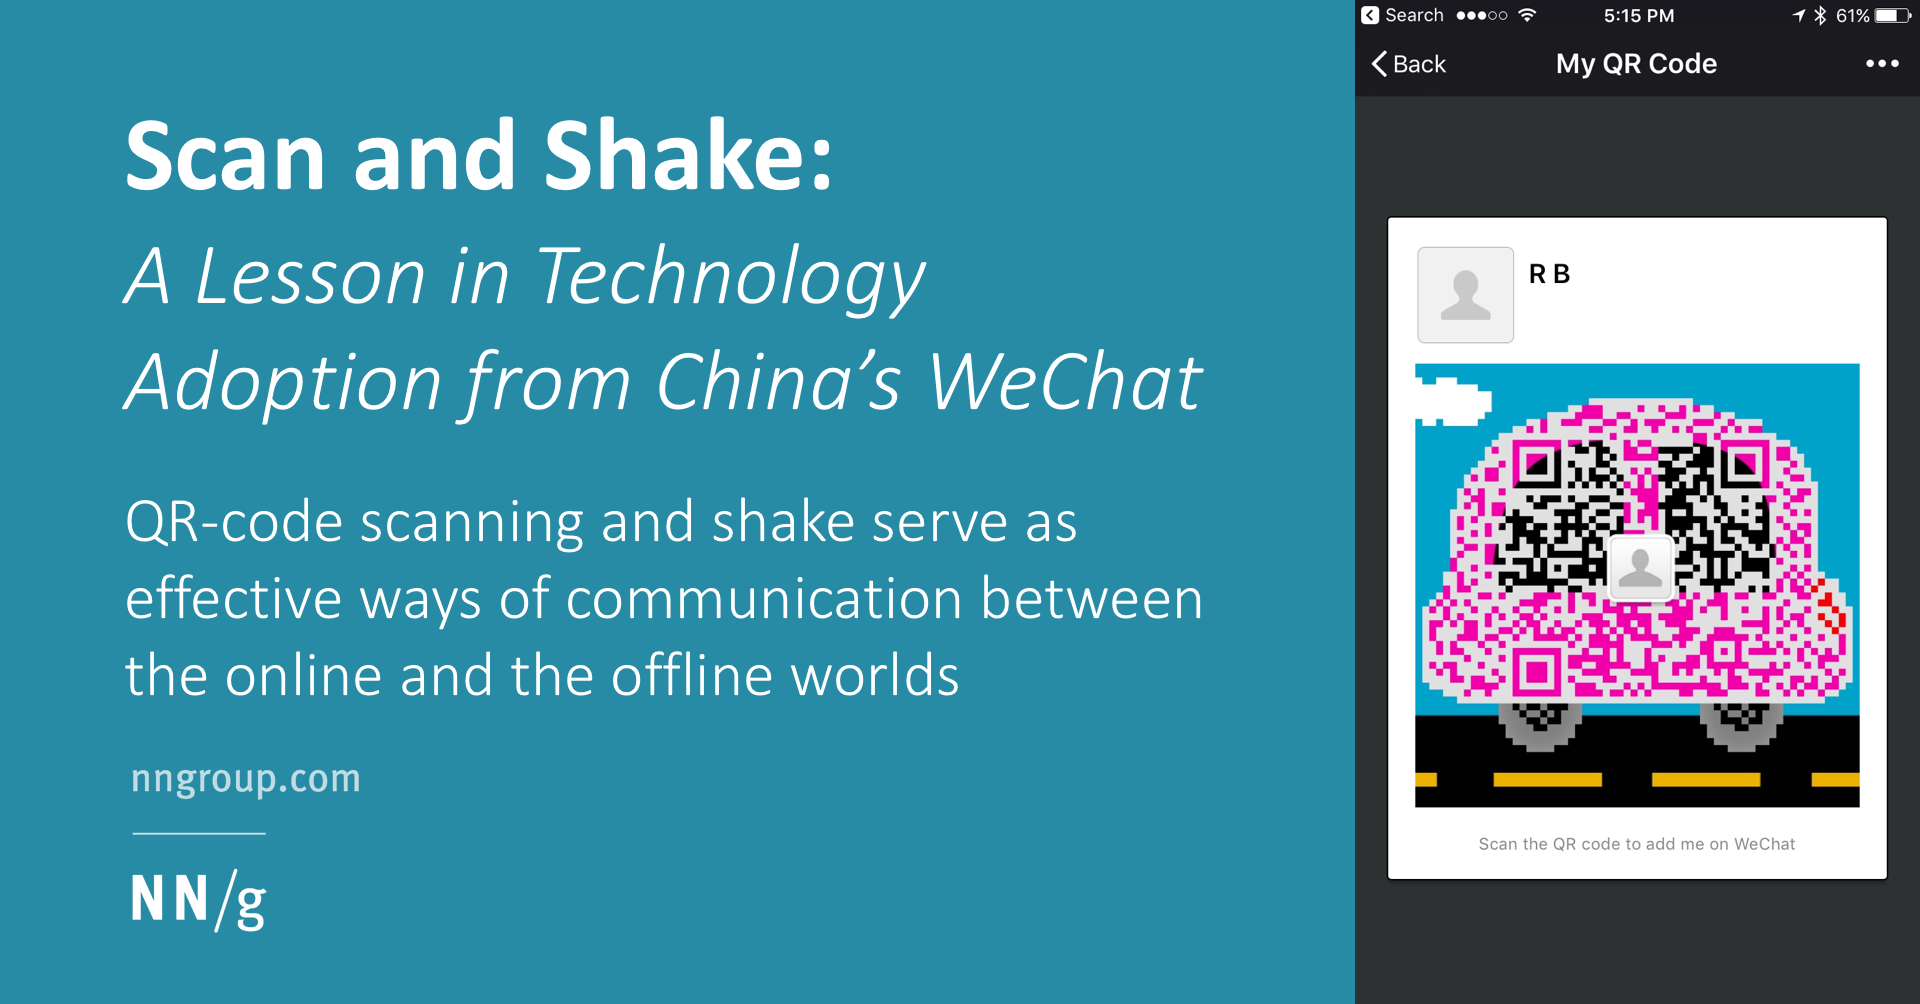 Scan and Shake: A Lesson in Technology Adoption from China's